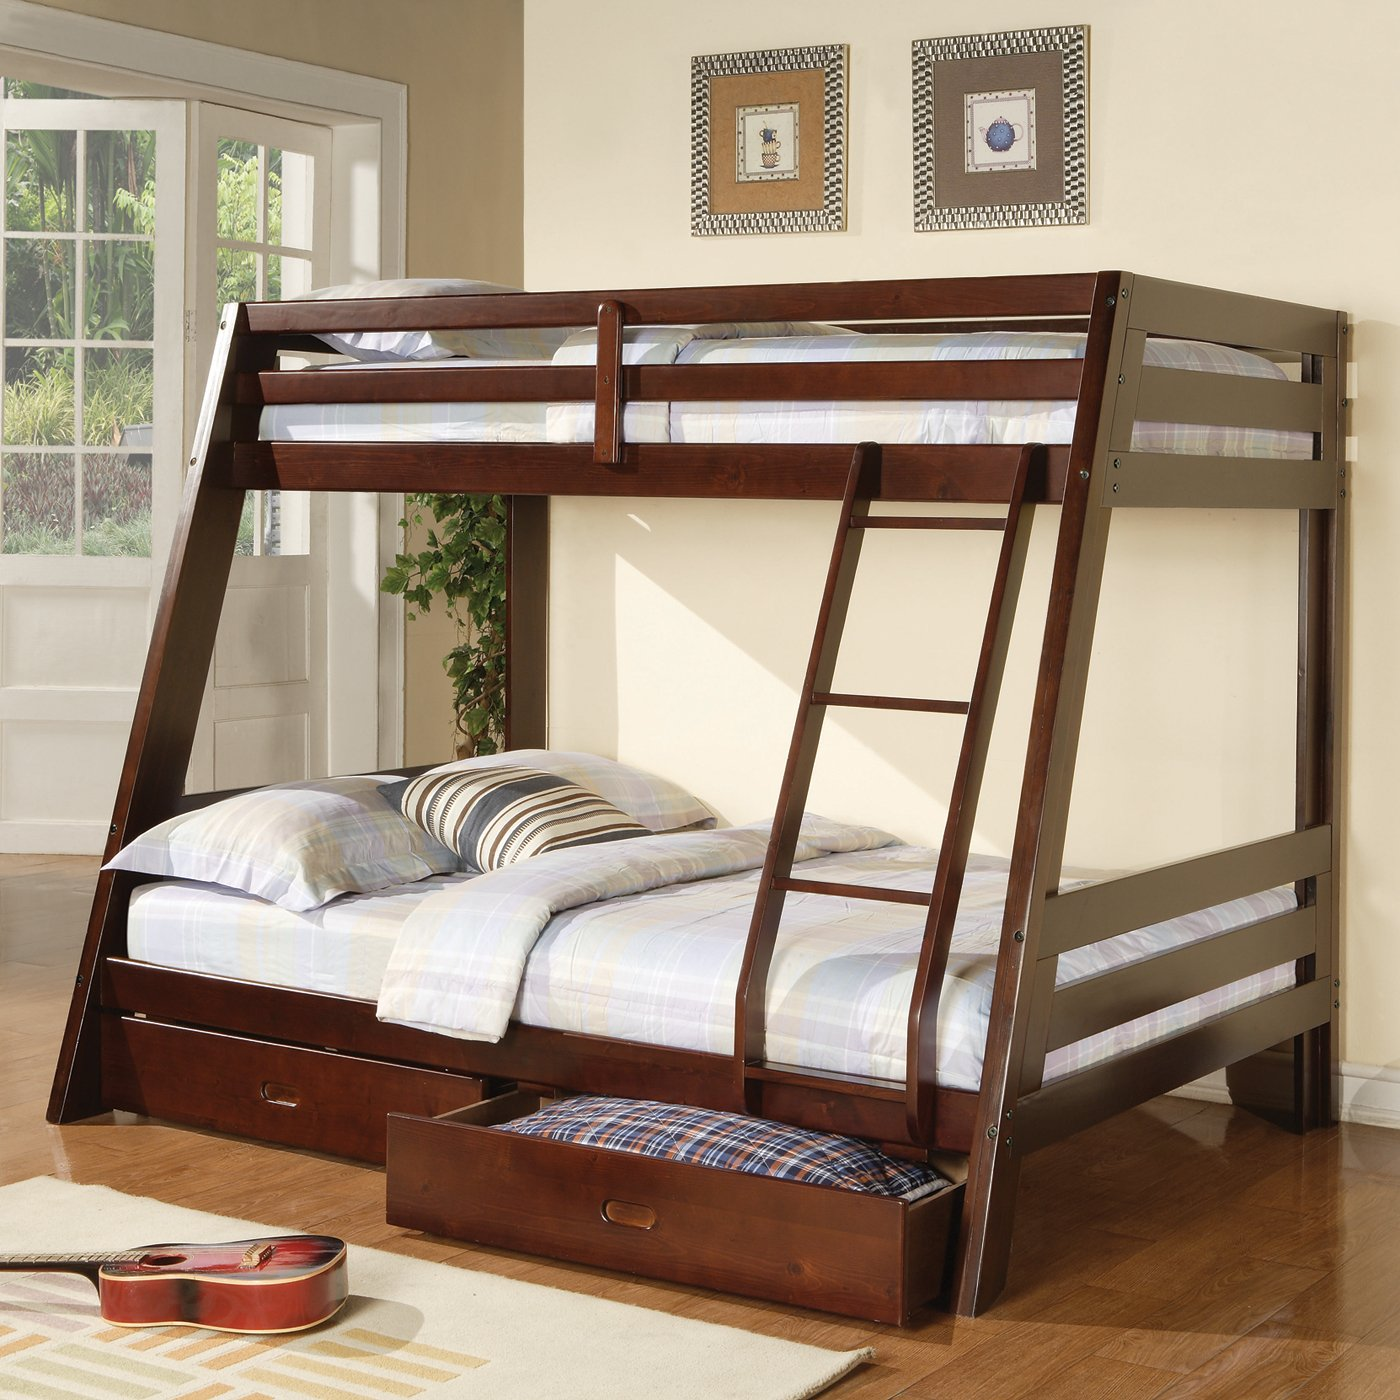 Queen bunk beds for sale queen murphy beds for sale for Queen bunk bed with desk